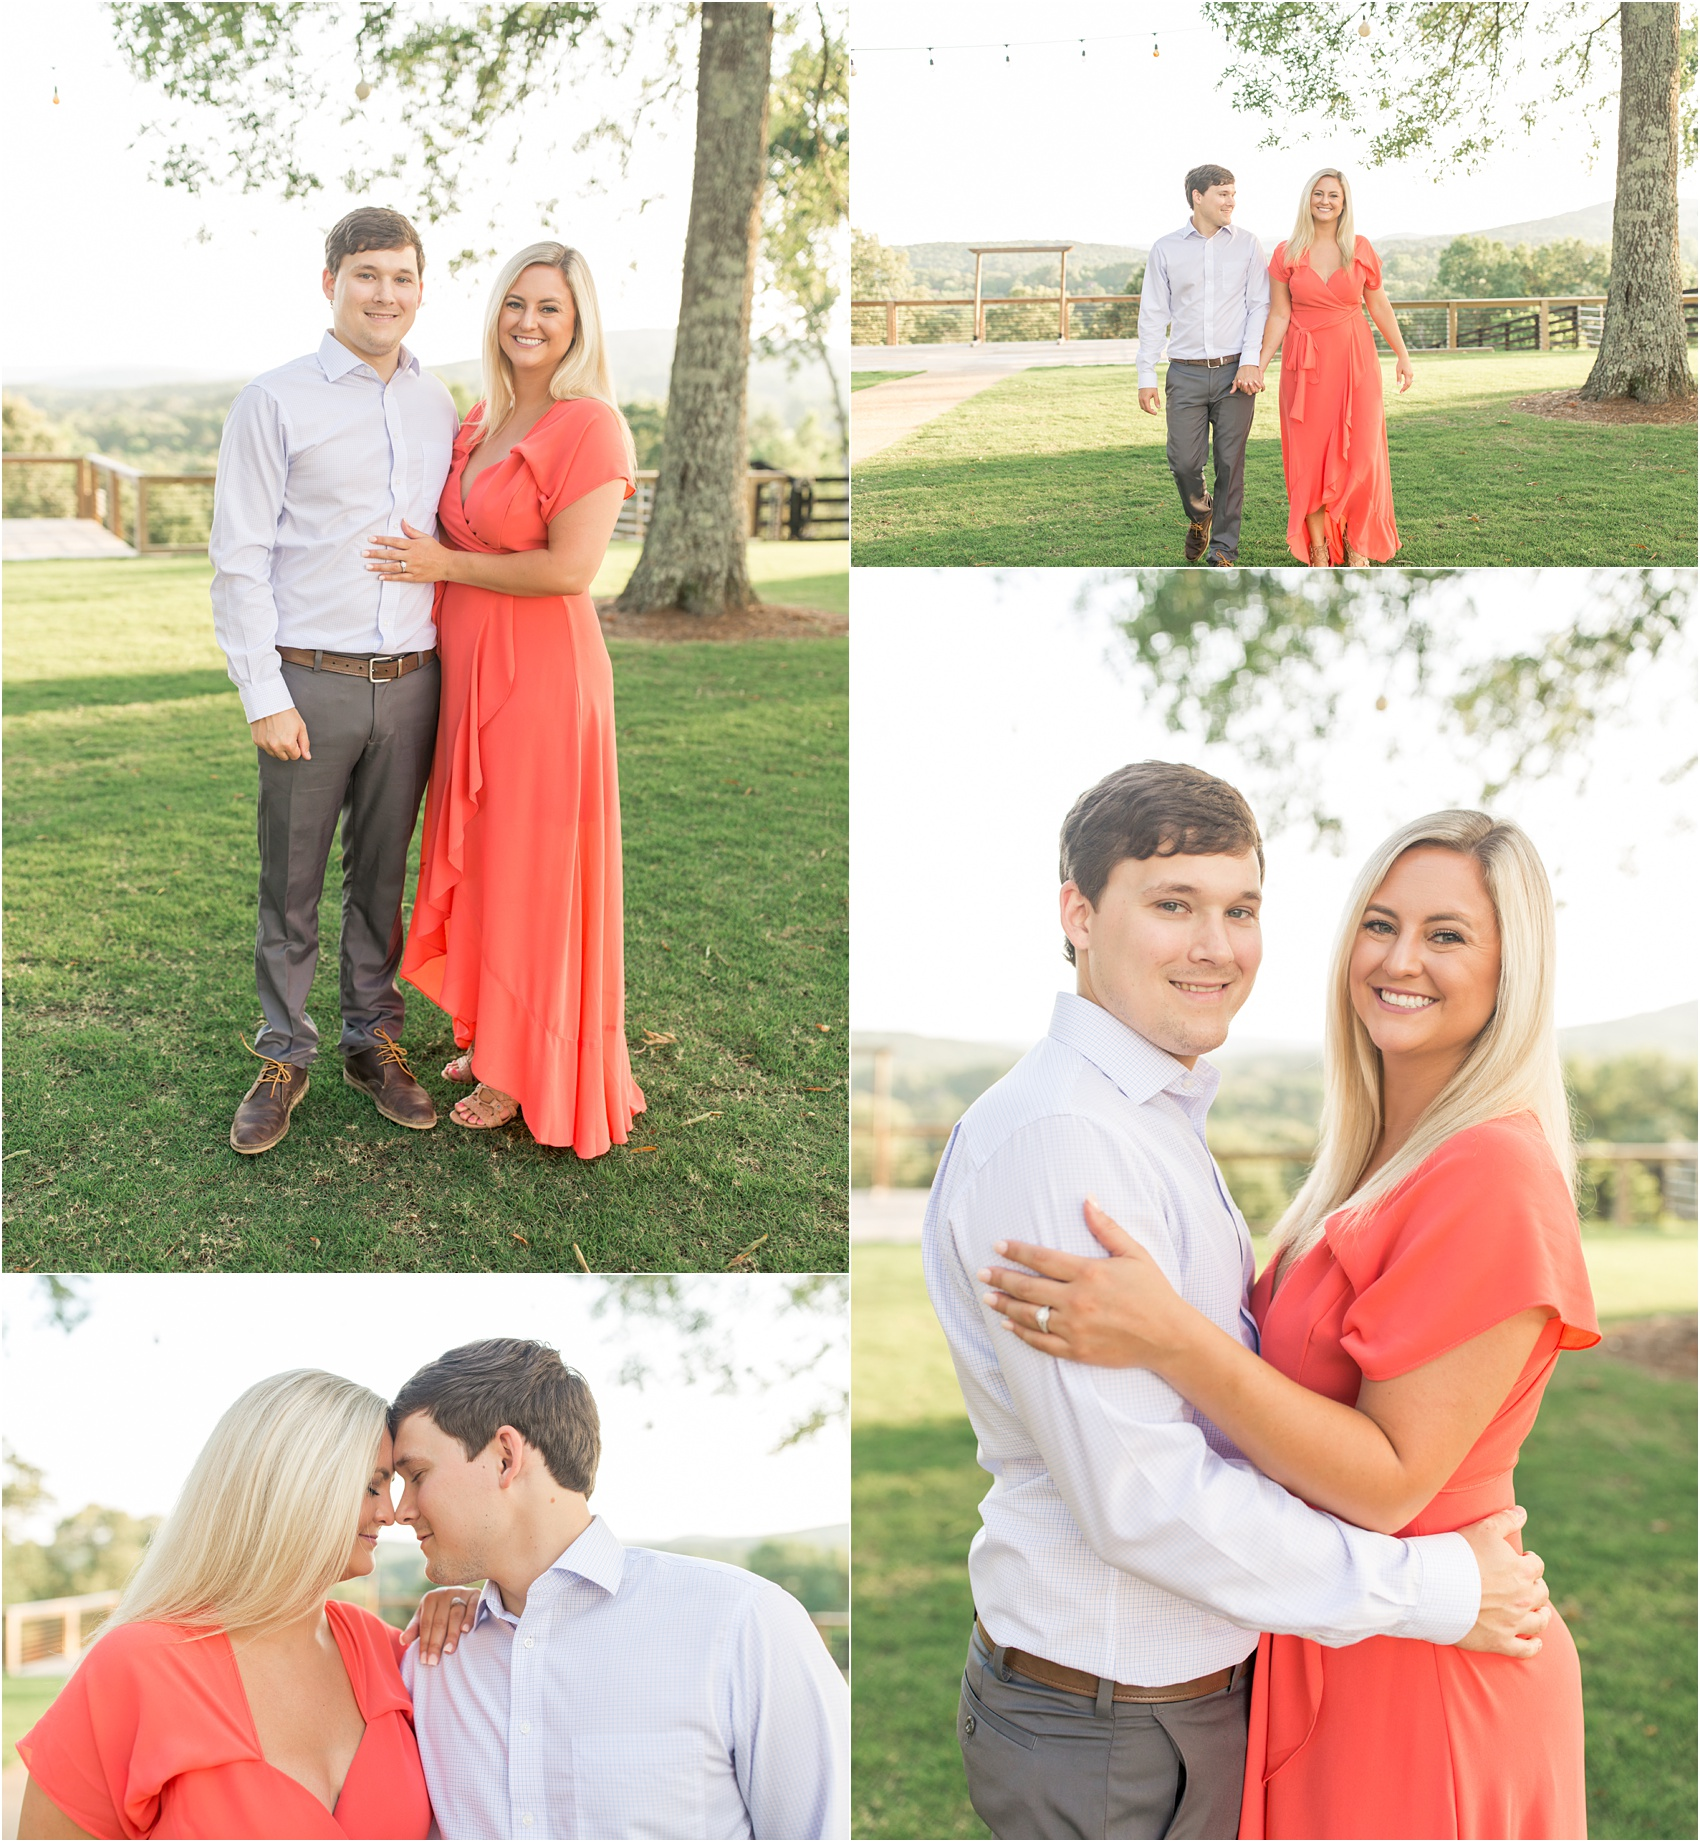 Savannah Eve Photography LLC- Settlemyer-Heyward Engagements- Blog-1.jpg